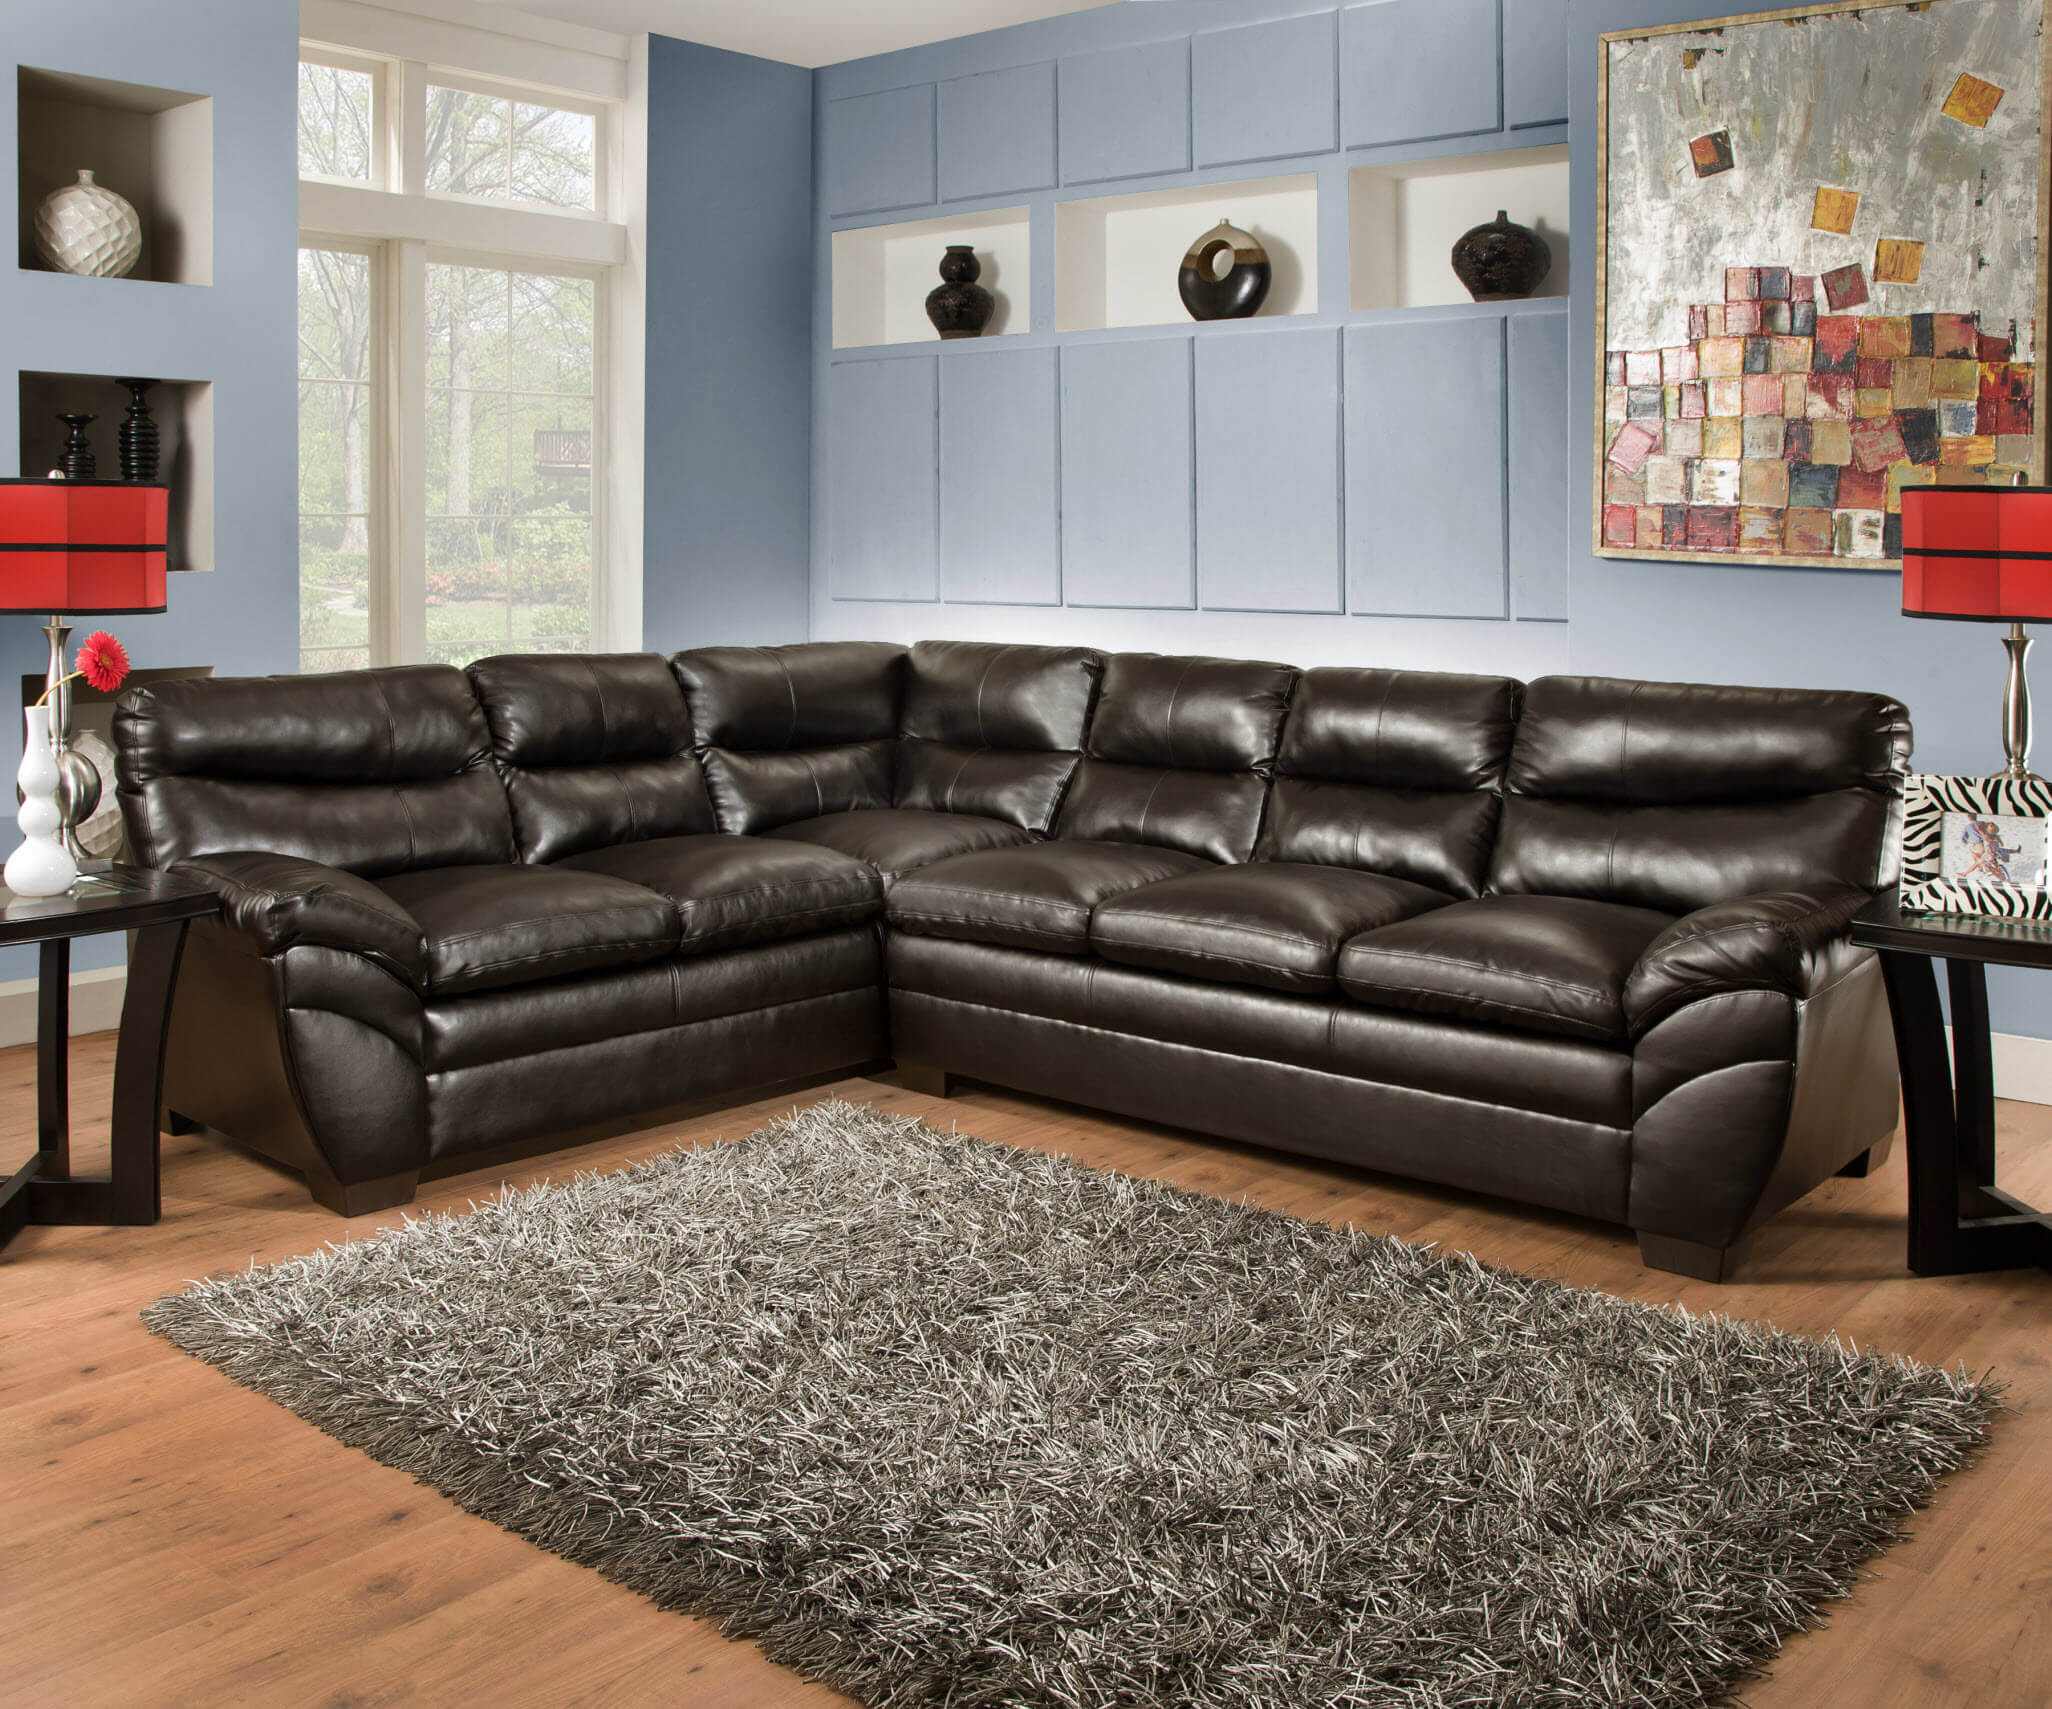 Sectional Sofa Sets : soho tufted sectional - Sectionals, Sofas & Couches